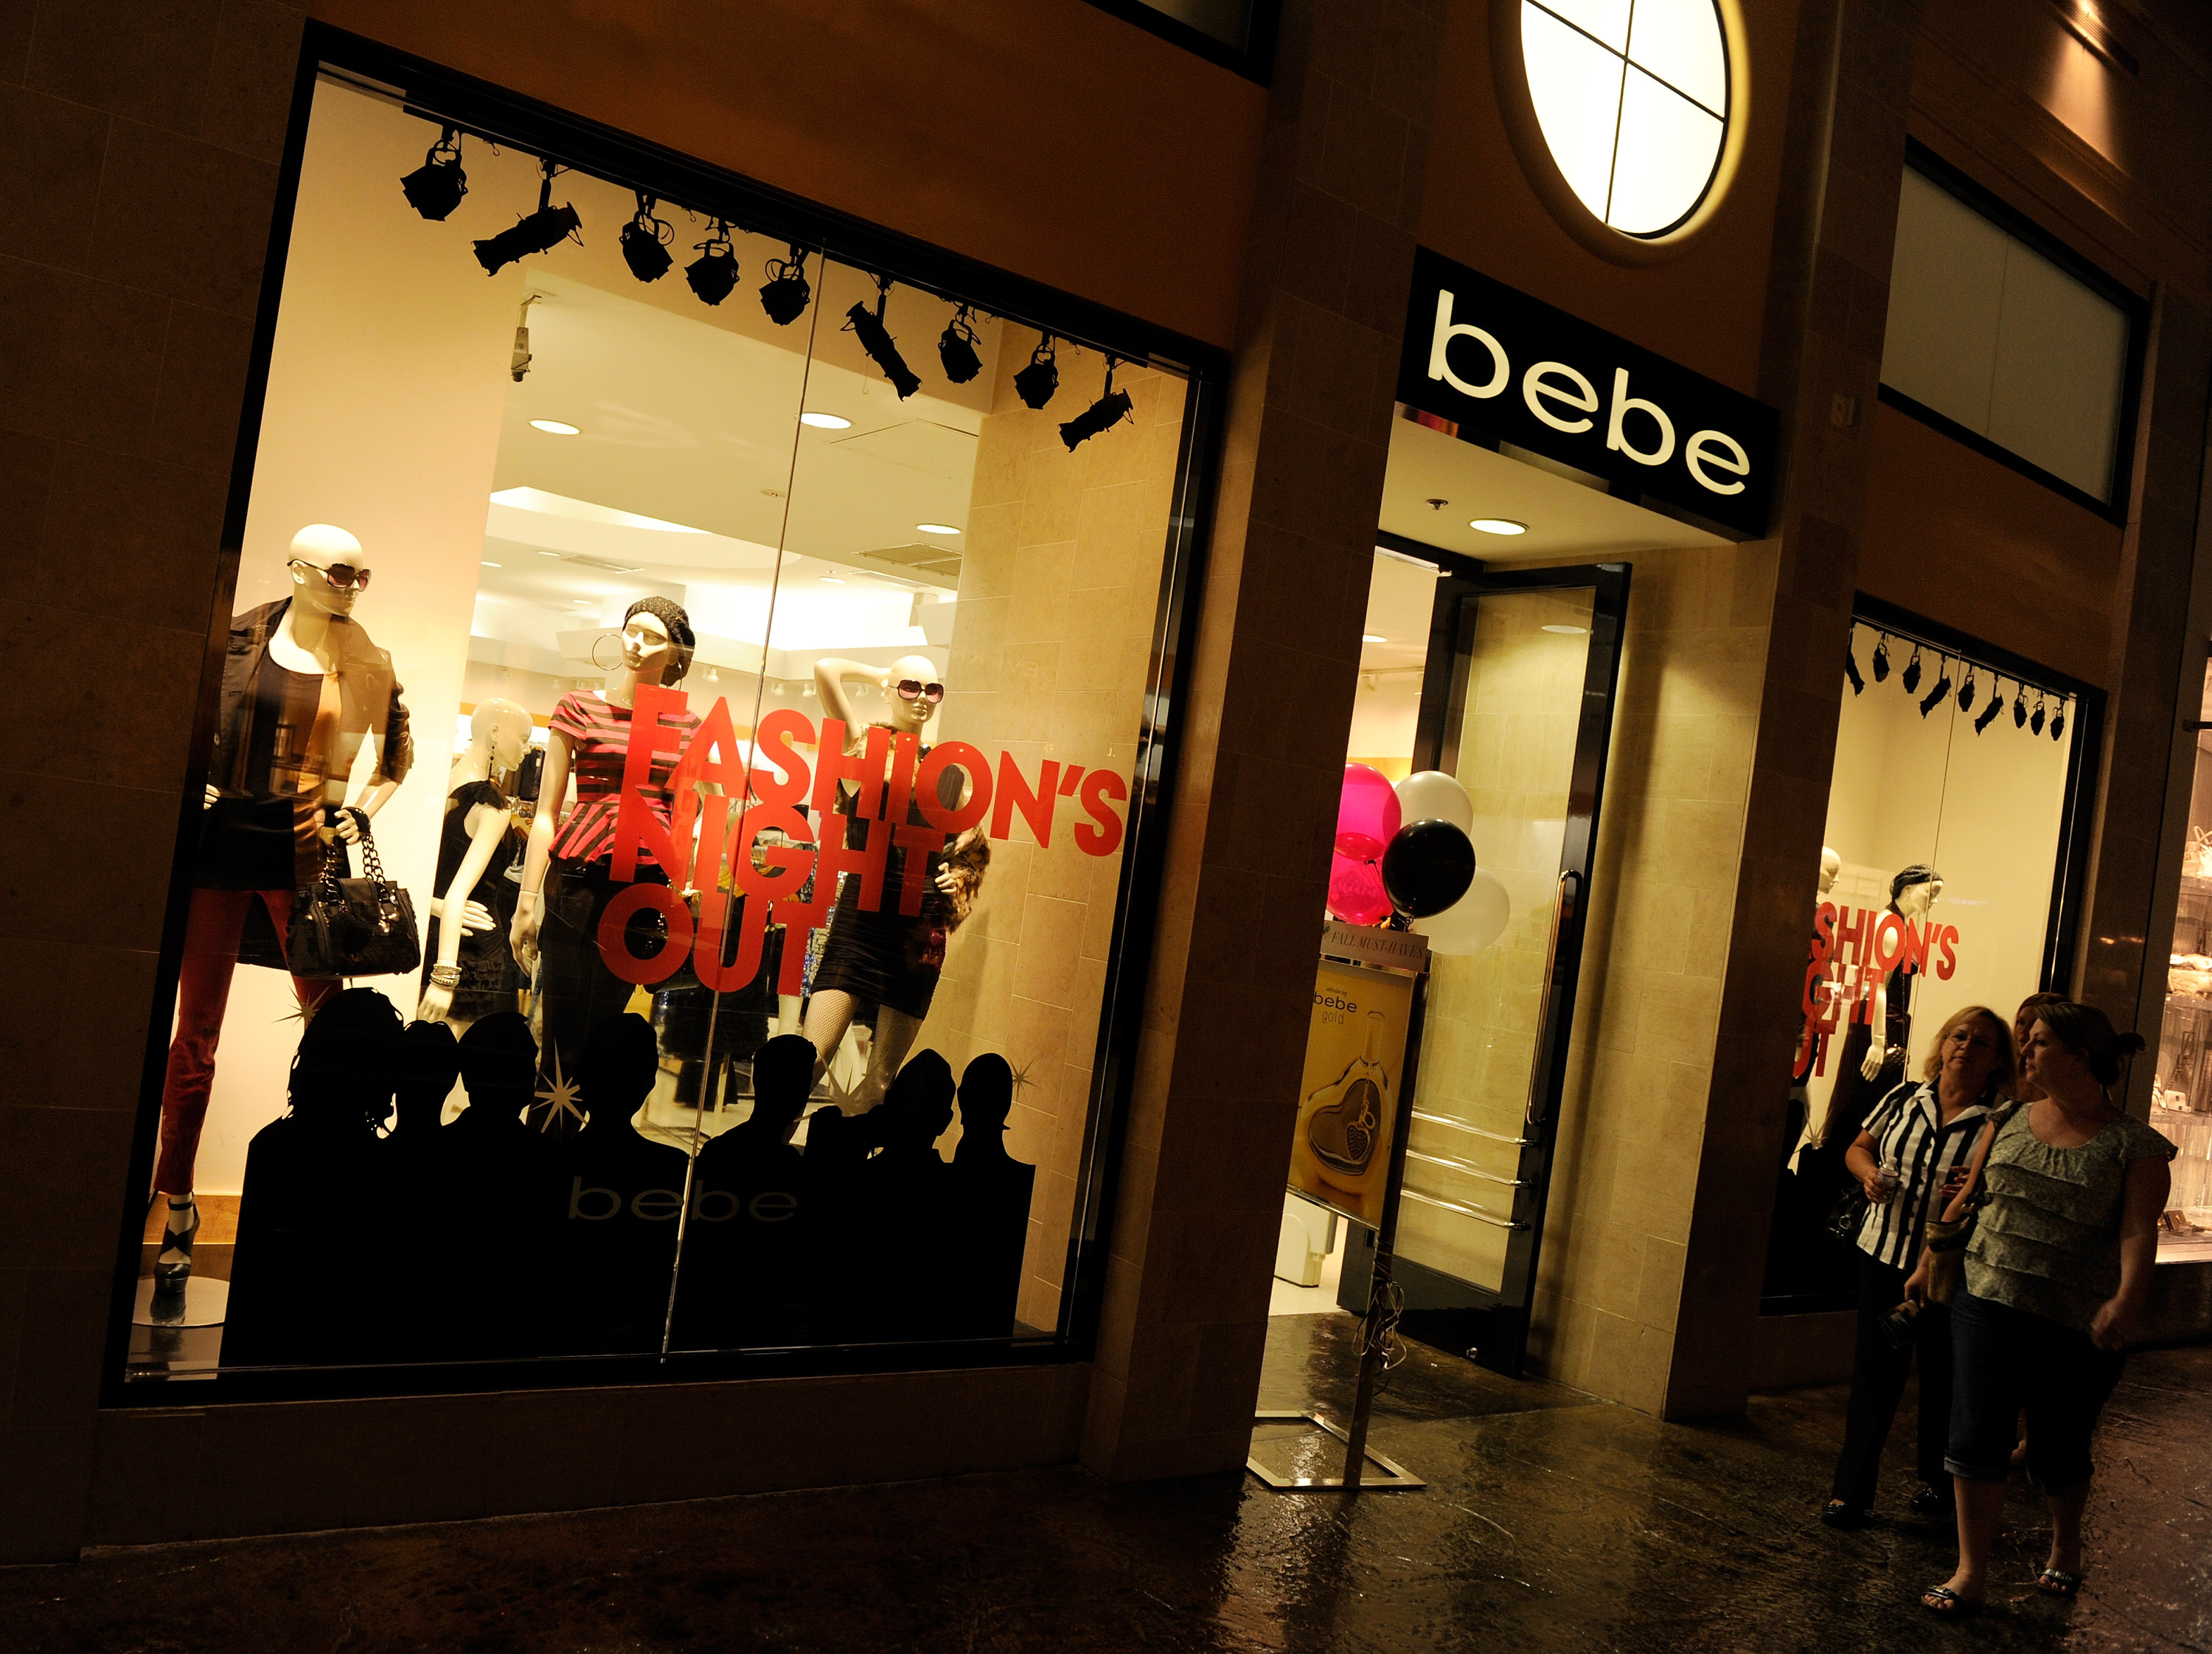 Customers walk by a Bebe store during Fashion's Night Out at The Forum Shops at Caesars in Las Vegas, Nevada.  (Getty Images)